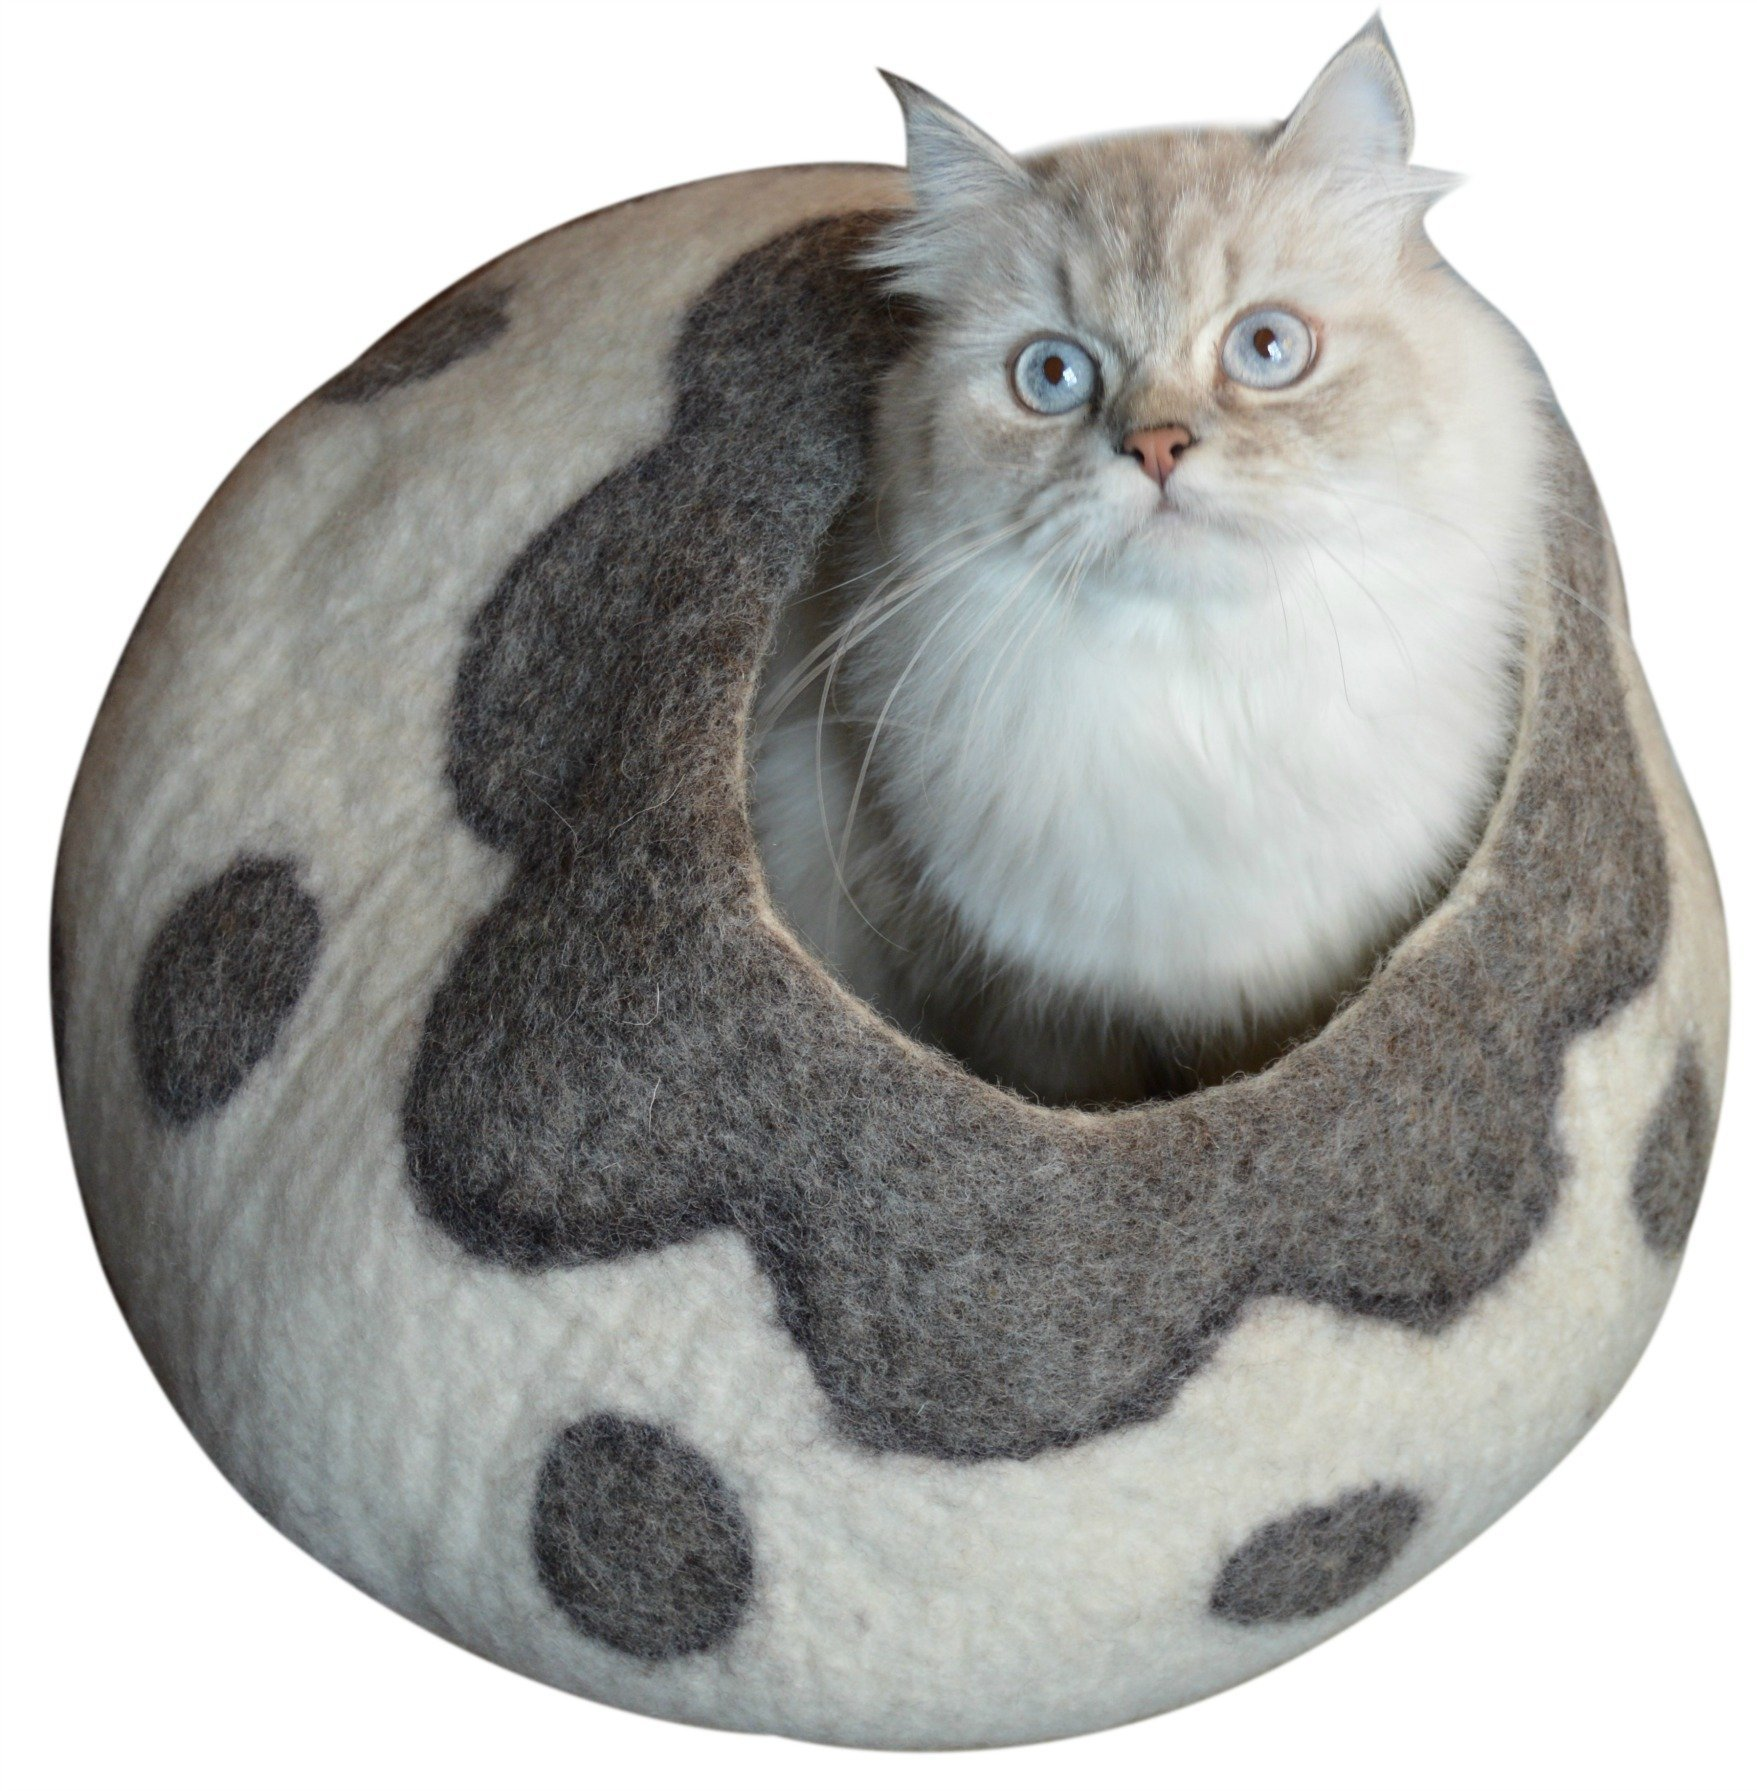 Best Cat Cave Bed, Gray White Handmade Natural Felted Merino Wool, Large Covered Cozy Cocoon, Indoor Hideaway Igloo House, Also Perfect Kitten Gift. Bonus Catnip, By Earthtone Solutions (Cozy Pueblo)